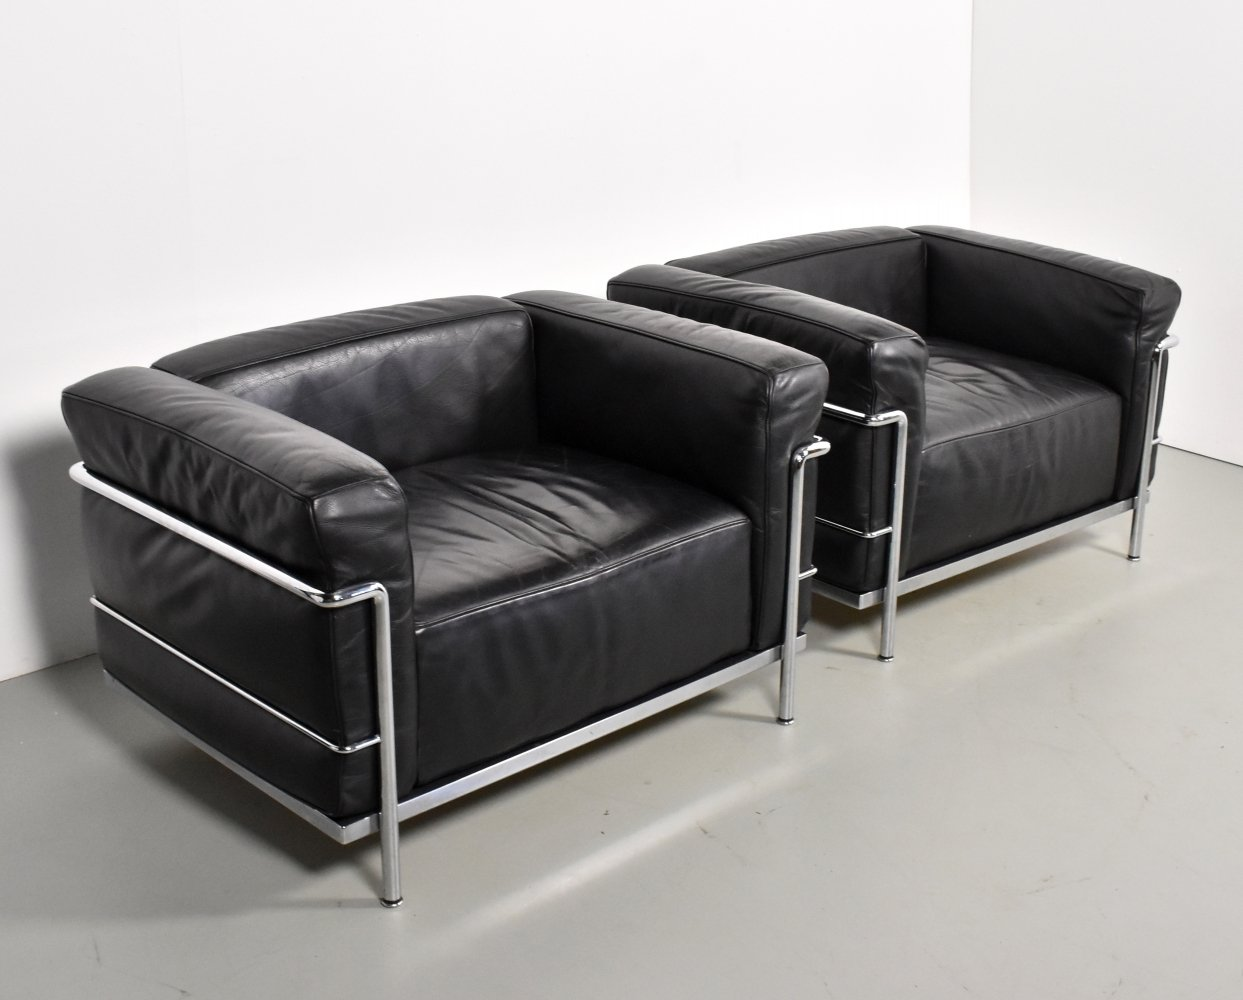 2 x LC3 lounge chair by Charlotte Perriand & Le Corbusier for Cassina, 1990s